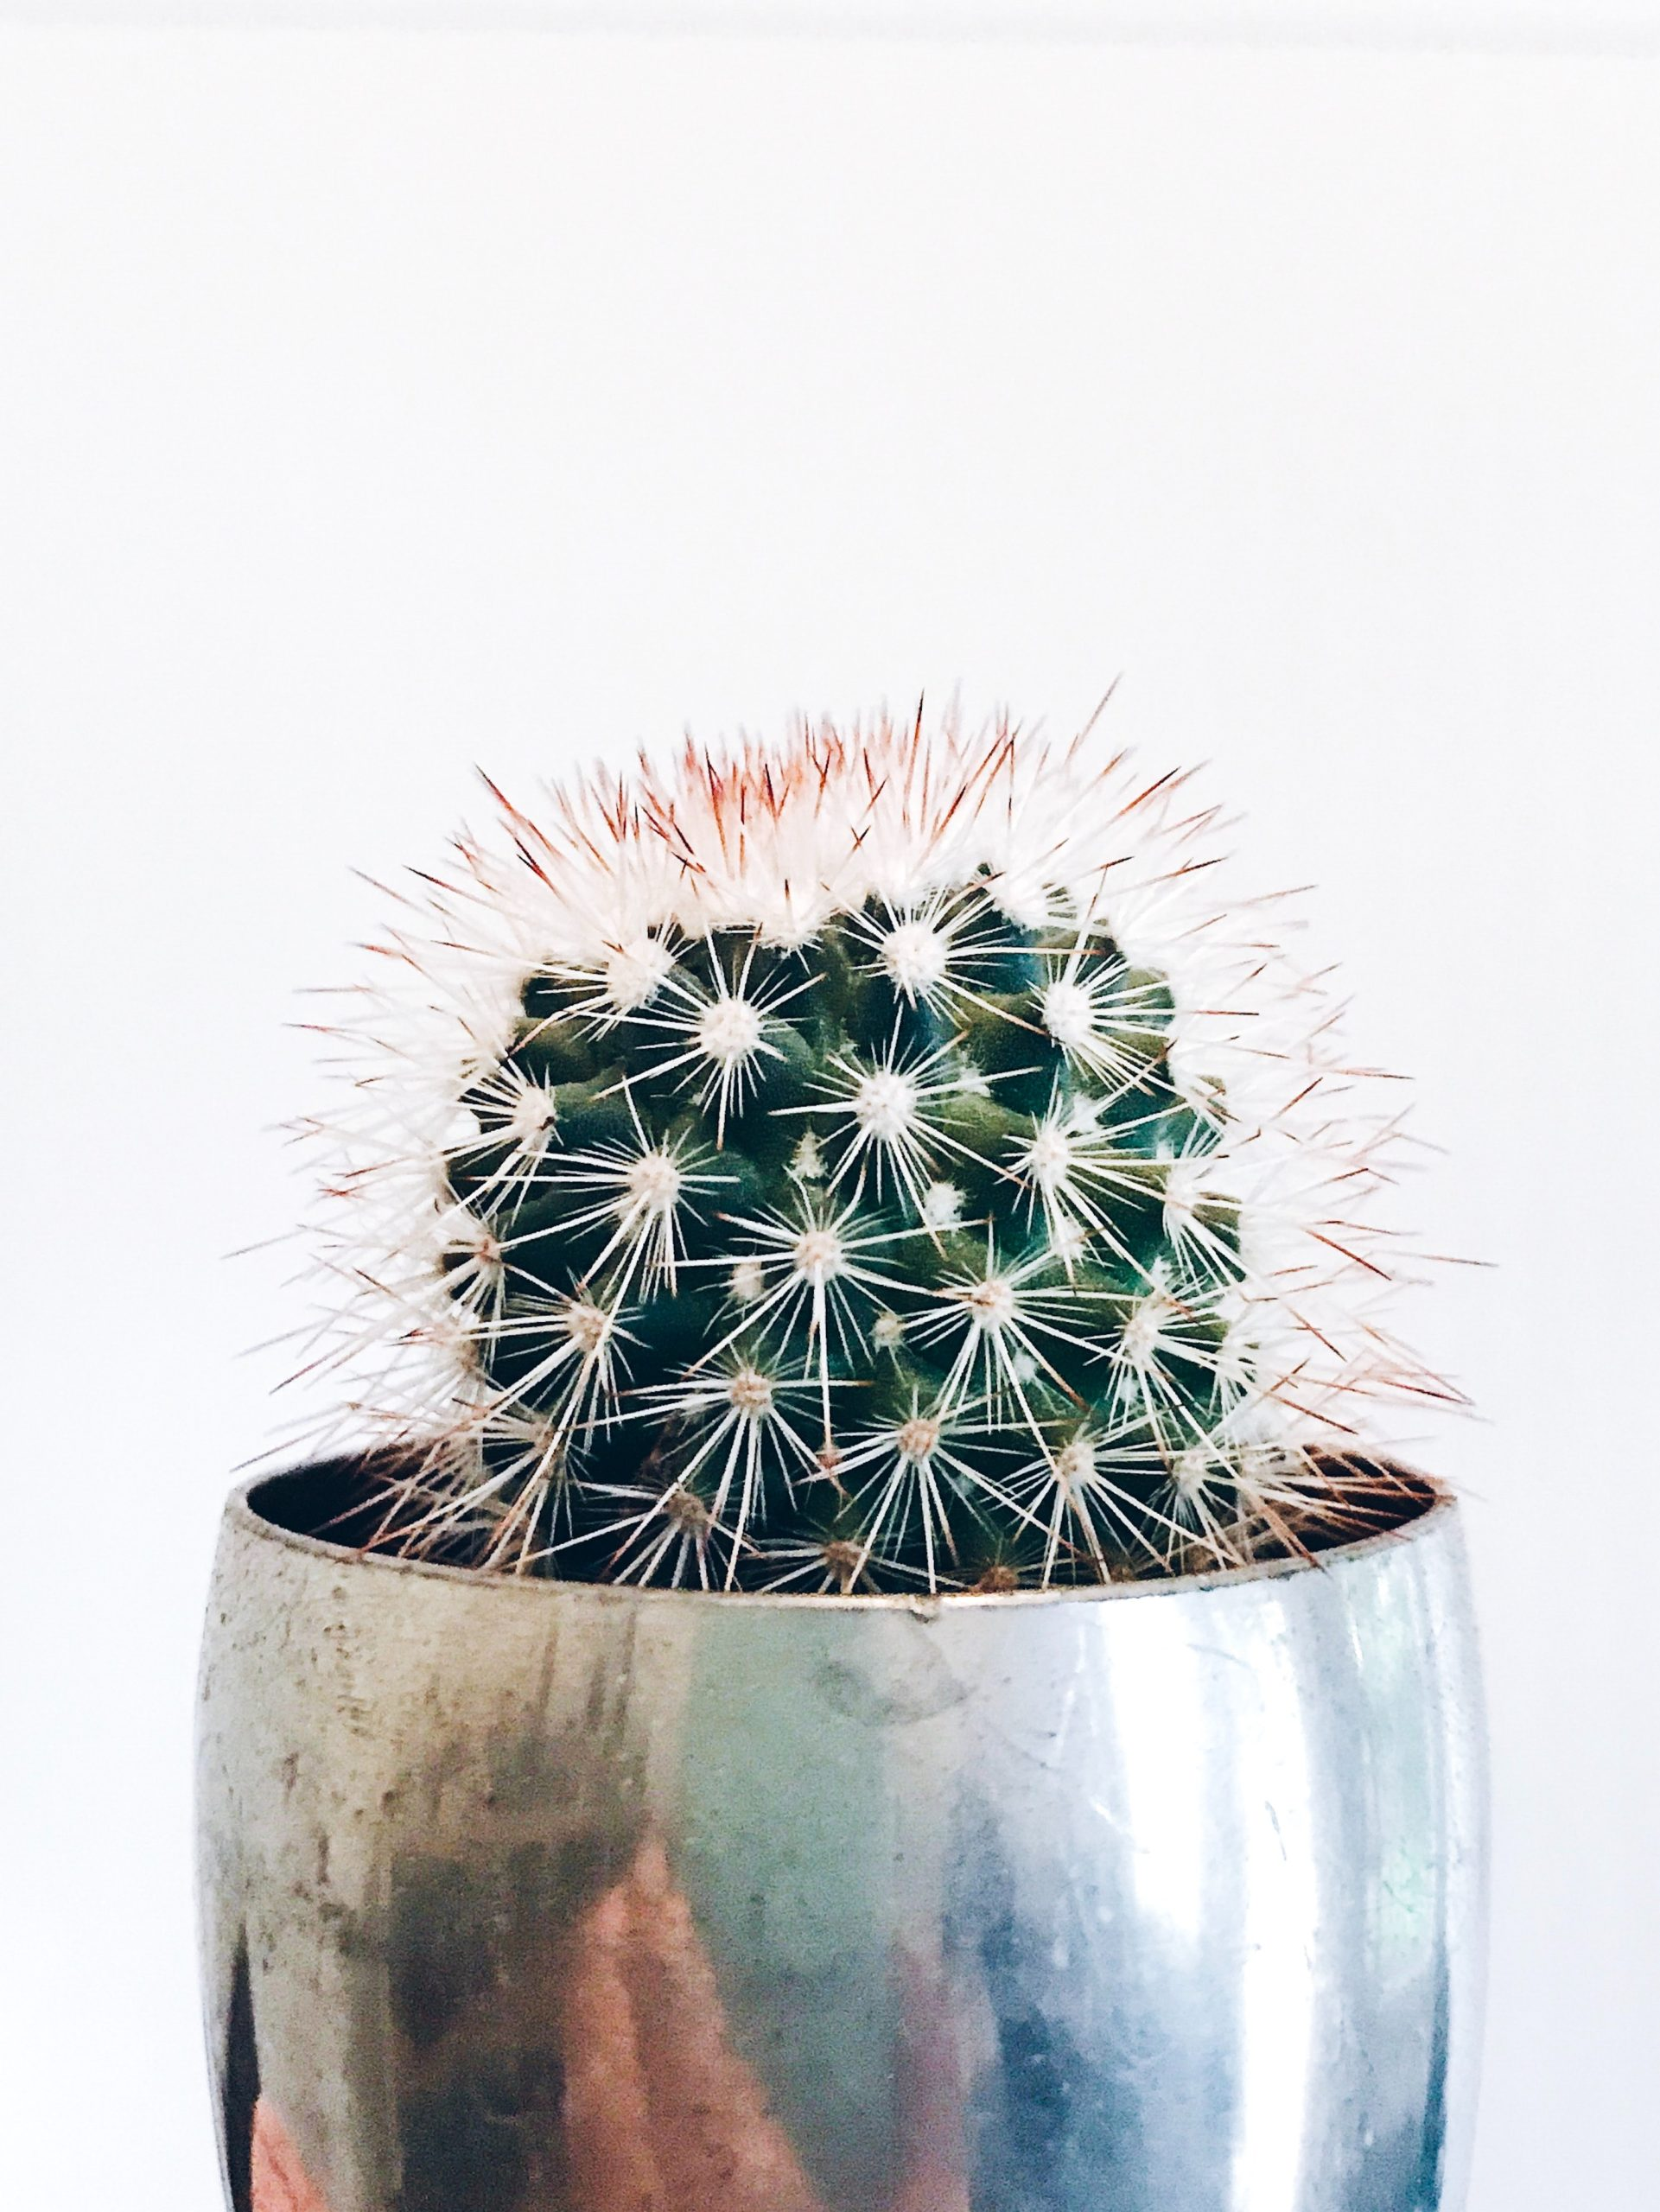 Small, prickly cactus with large spikes